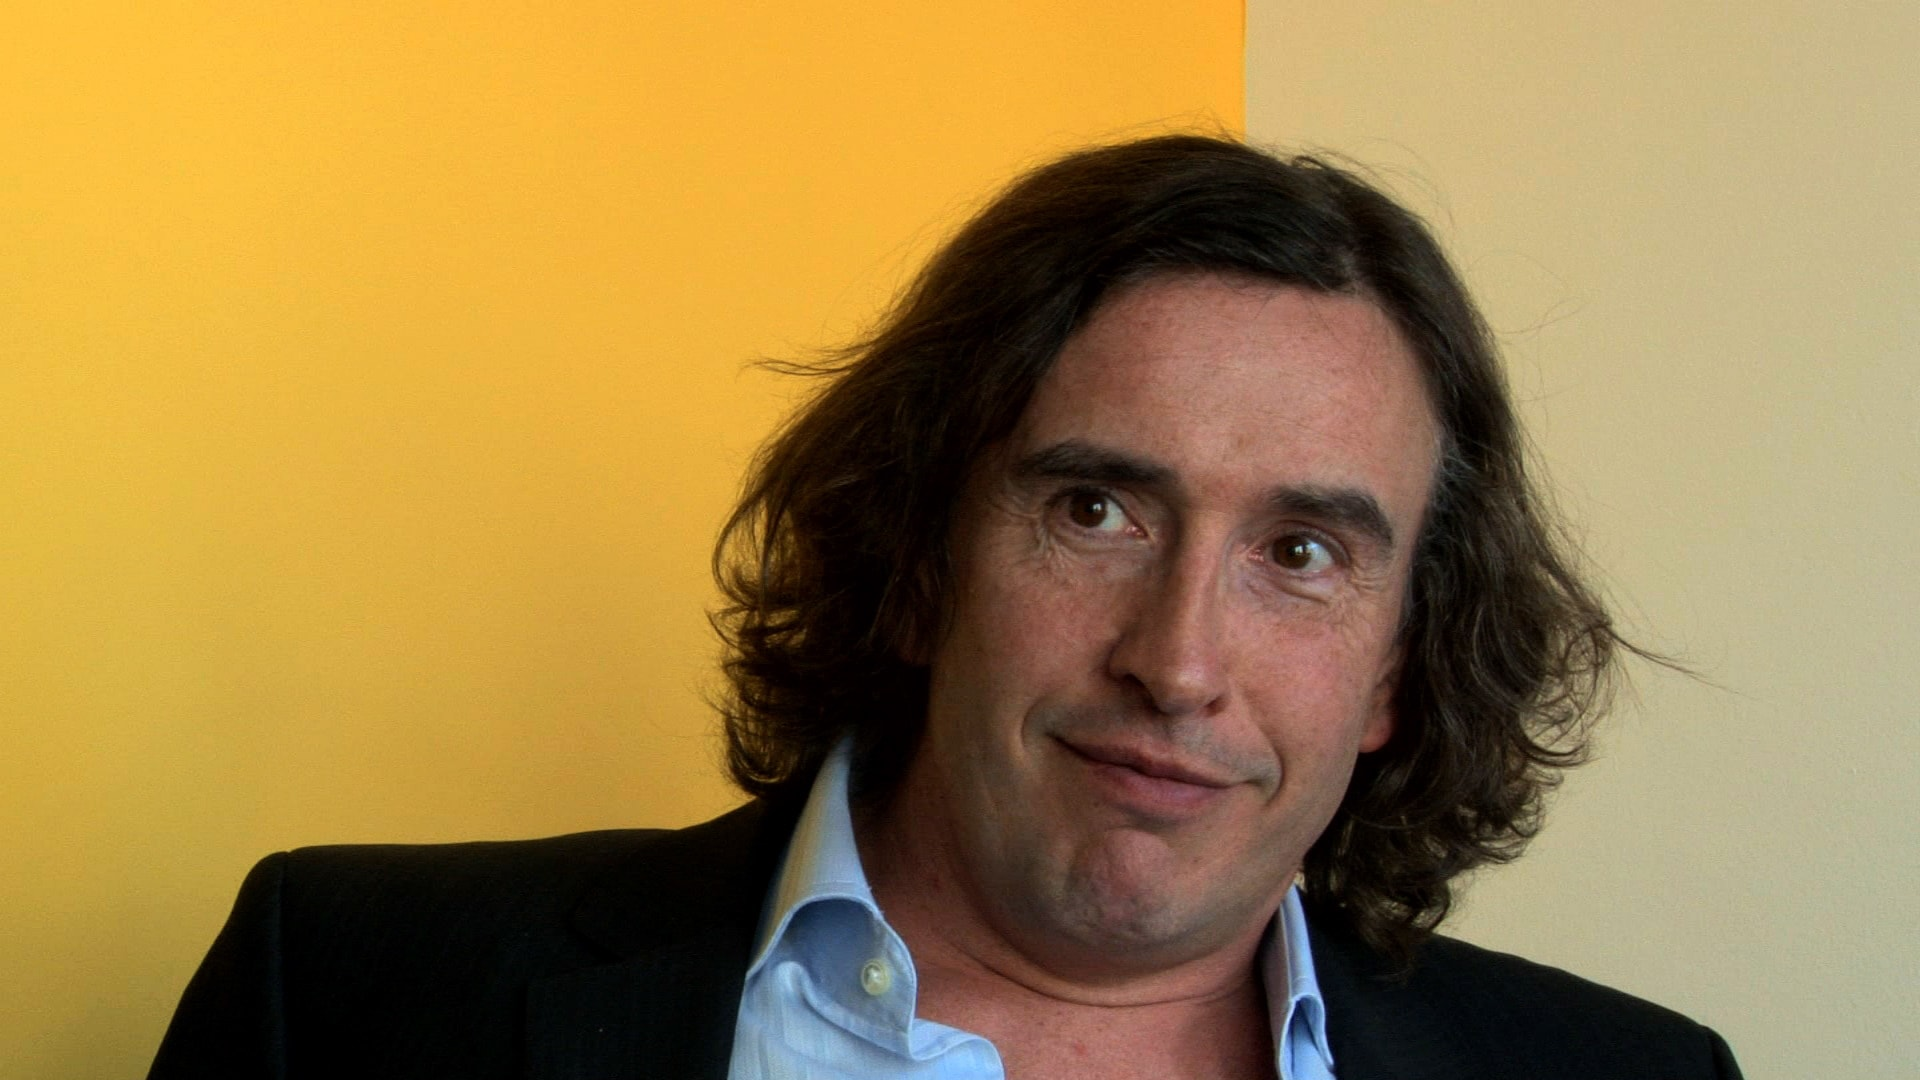 Steve Coogan Background